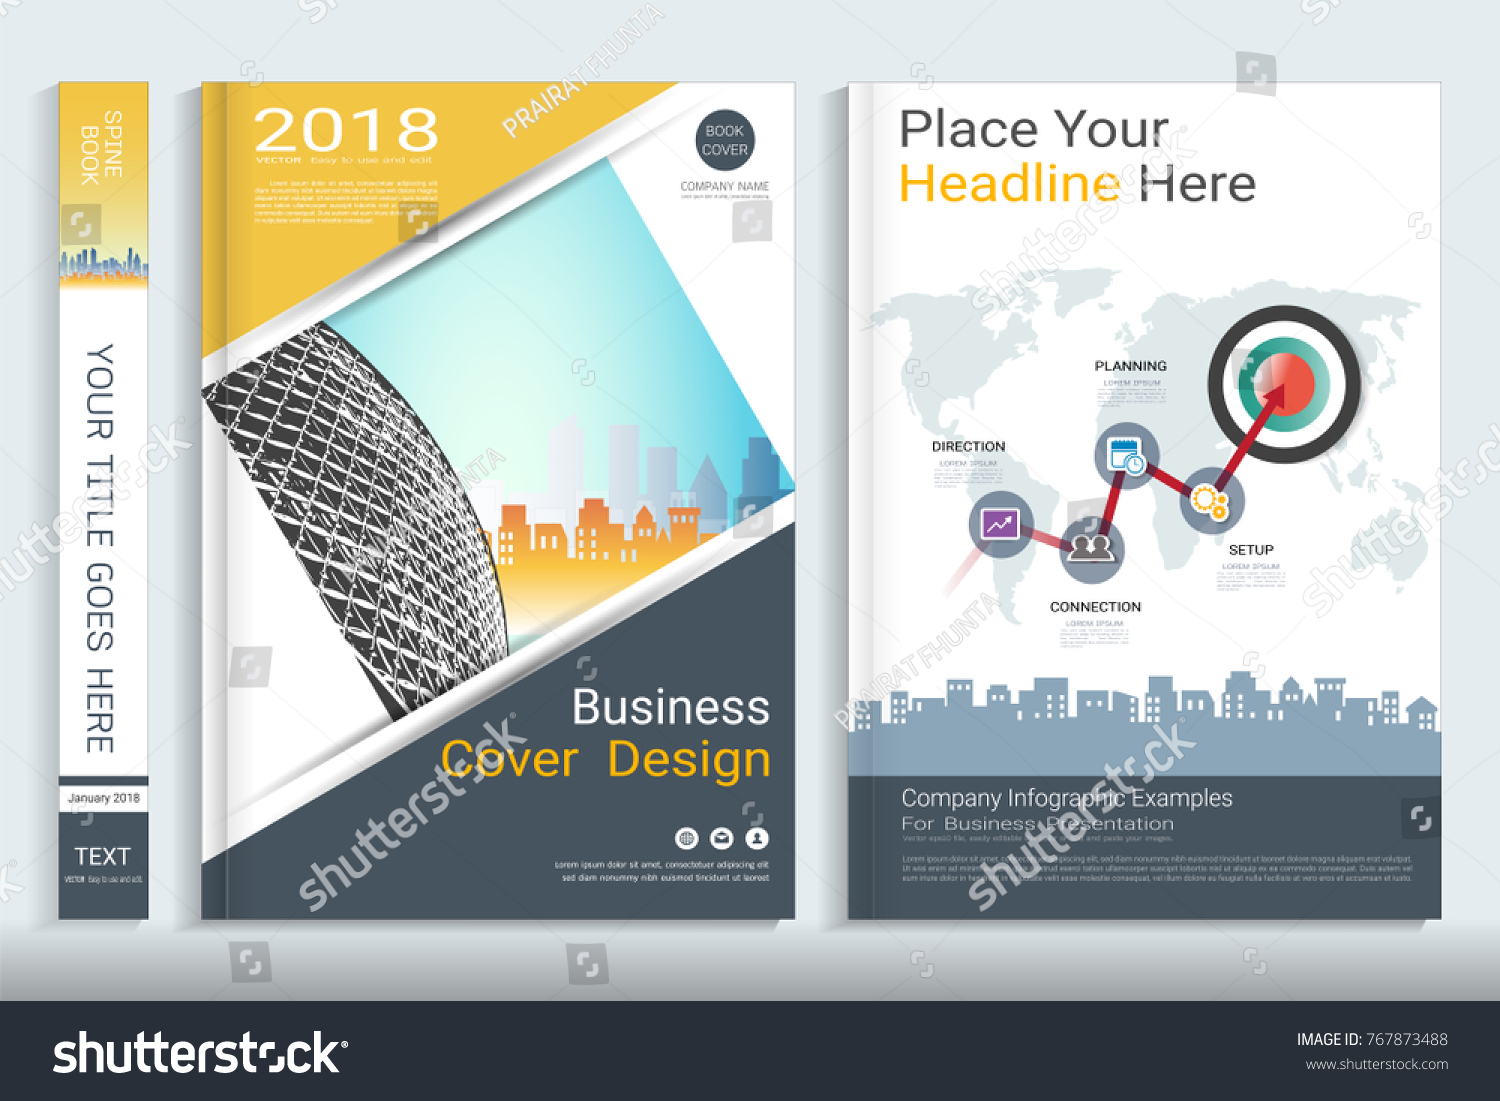 Book Cover Background Examples ~ Corporate business cover design space photo stock vector royalty